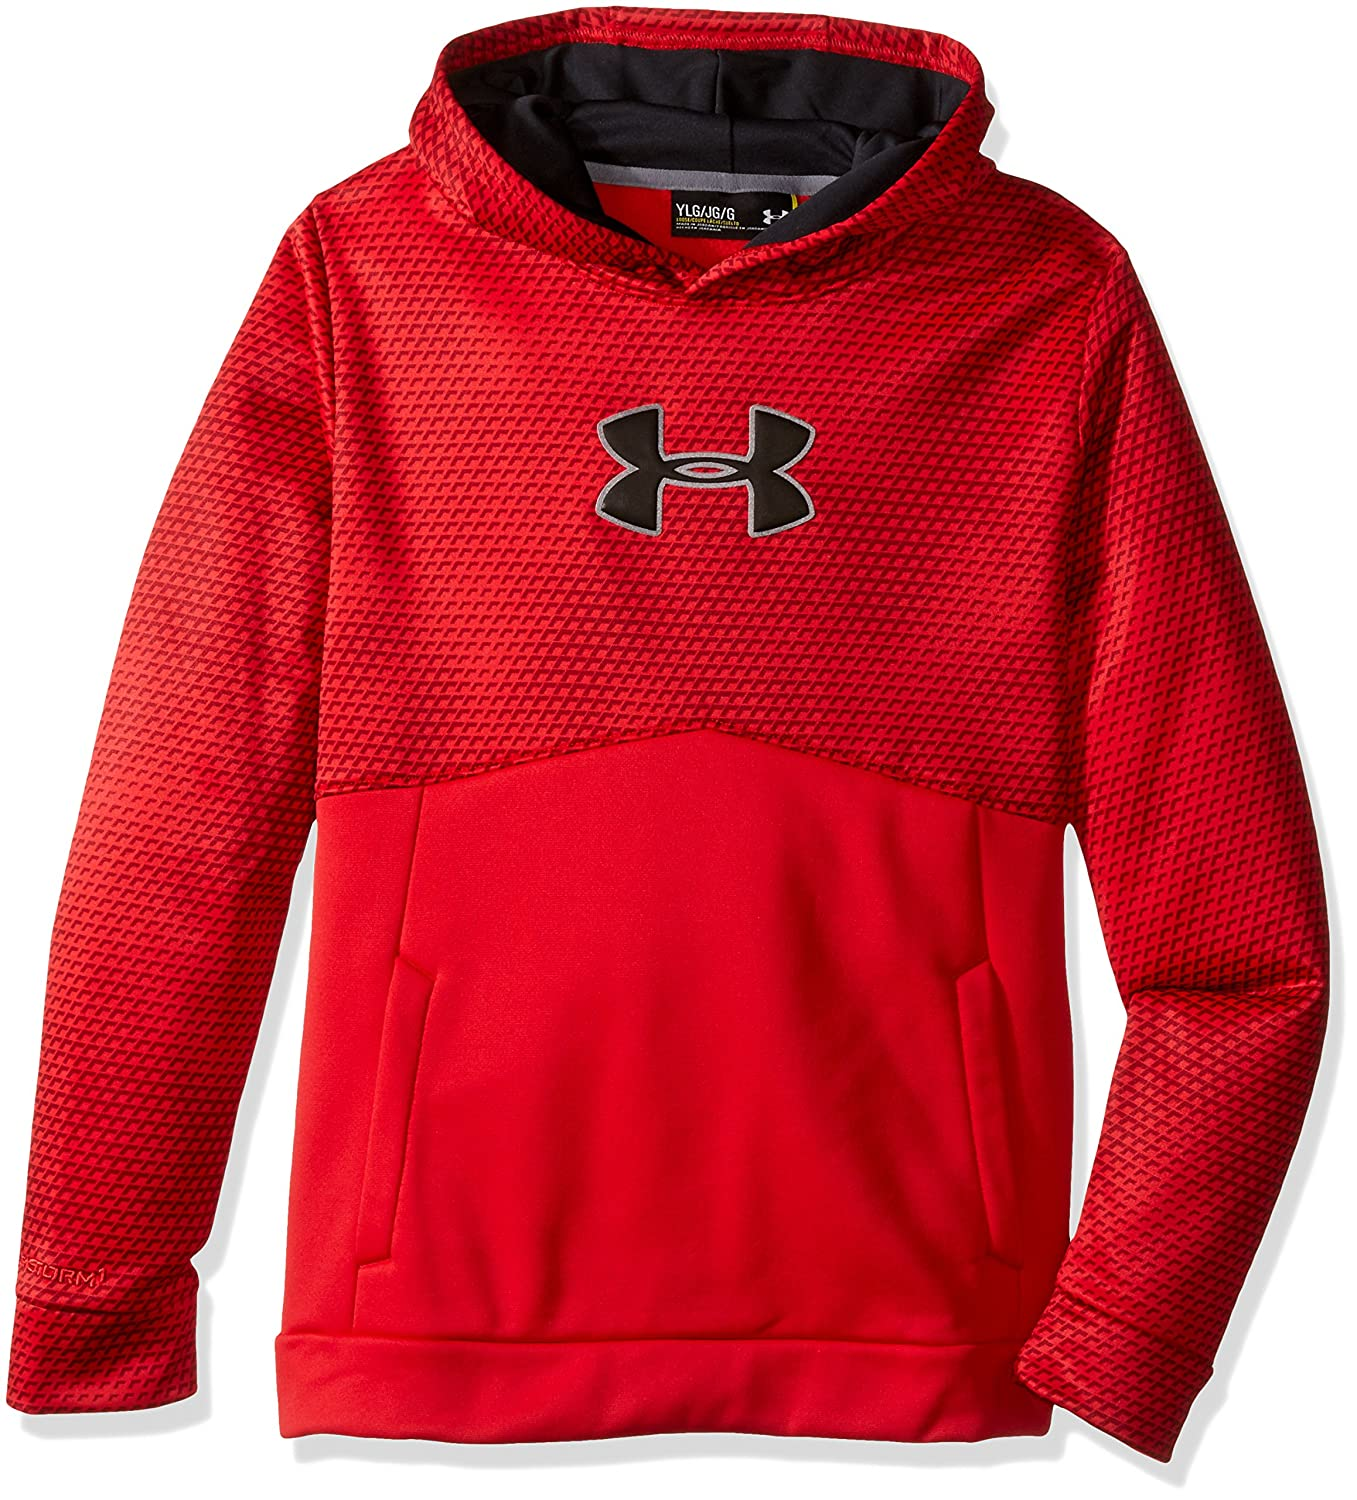 Under Armour Boys' Storm Armour Fleece Mid Logo Hoodie Under Armour Apparel 1282927